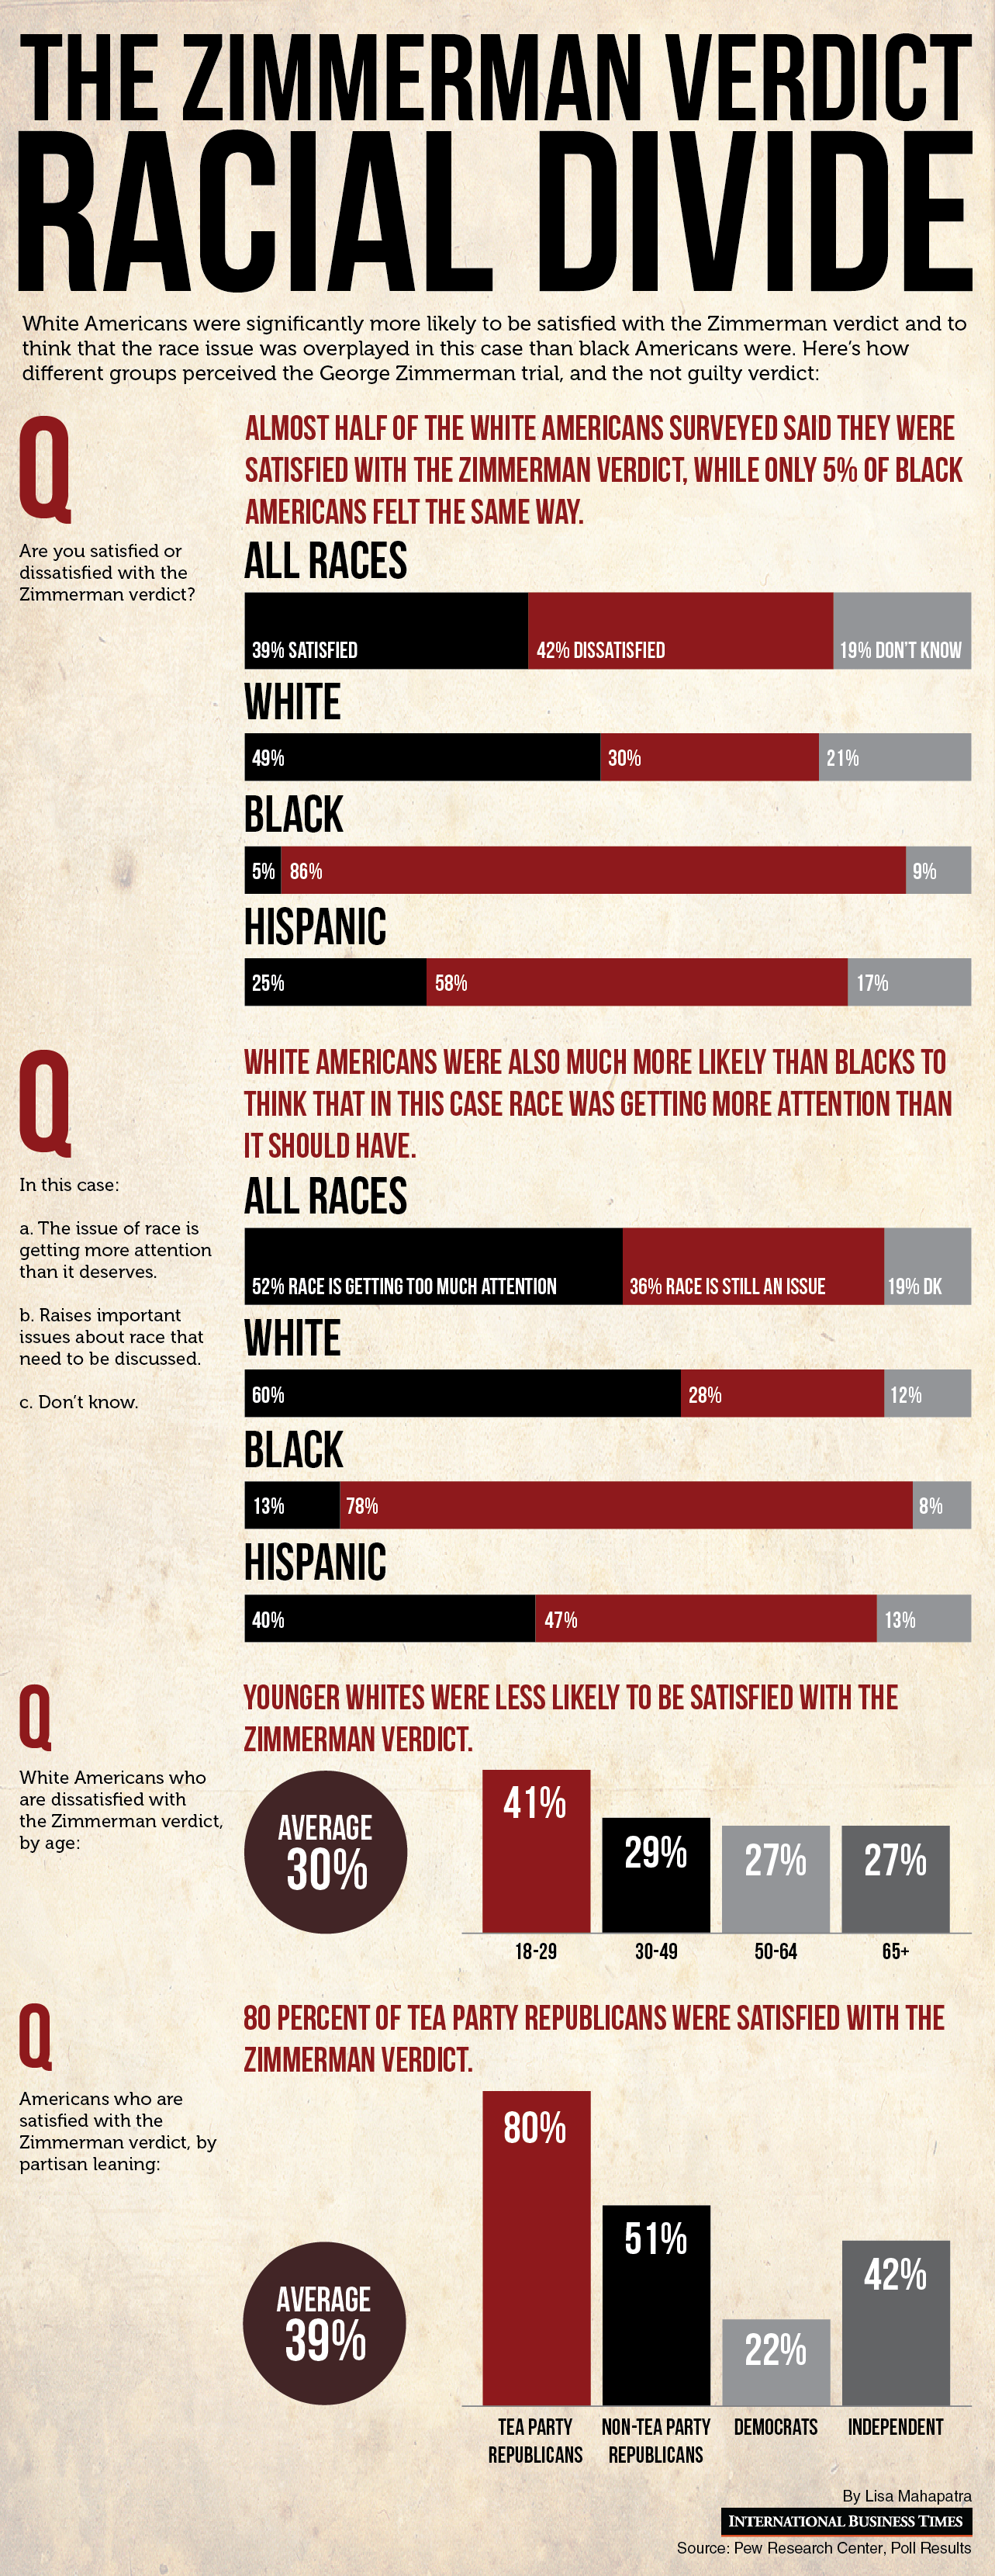 Racial Divide Over Zimmerman Trial